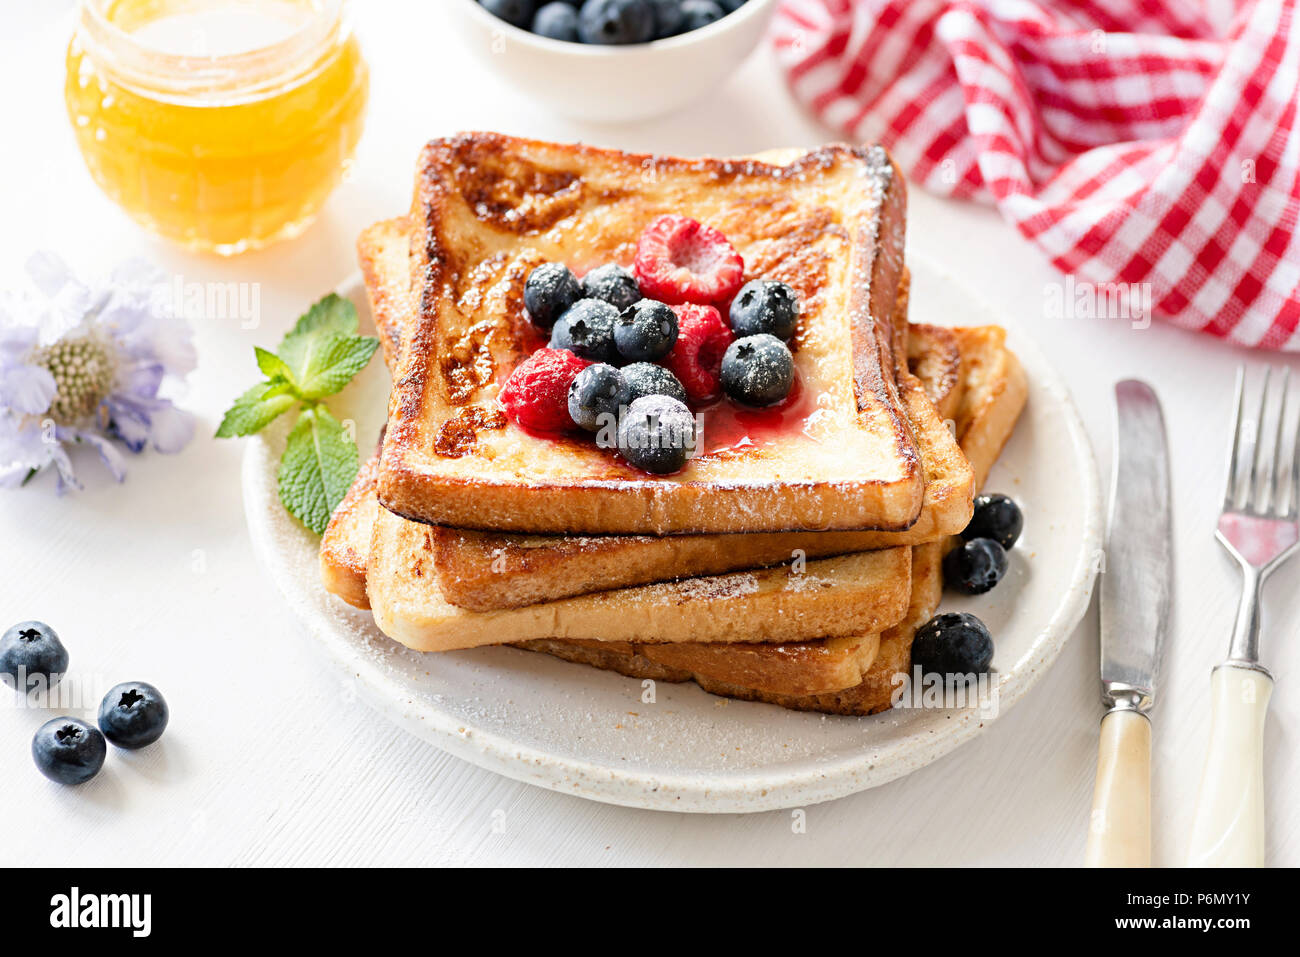 Delicious French toast with berries and honey on white plate. Tasty breakfast concept - Stock Image